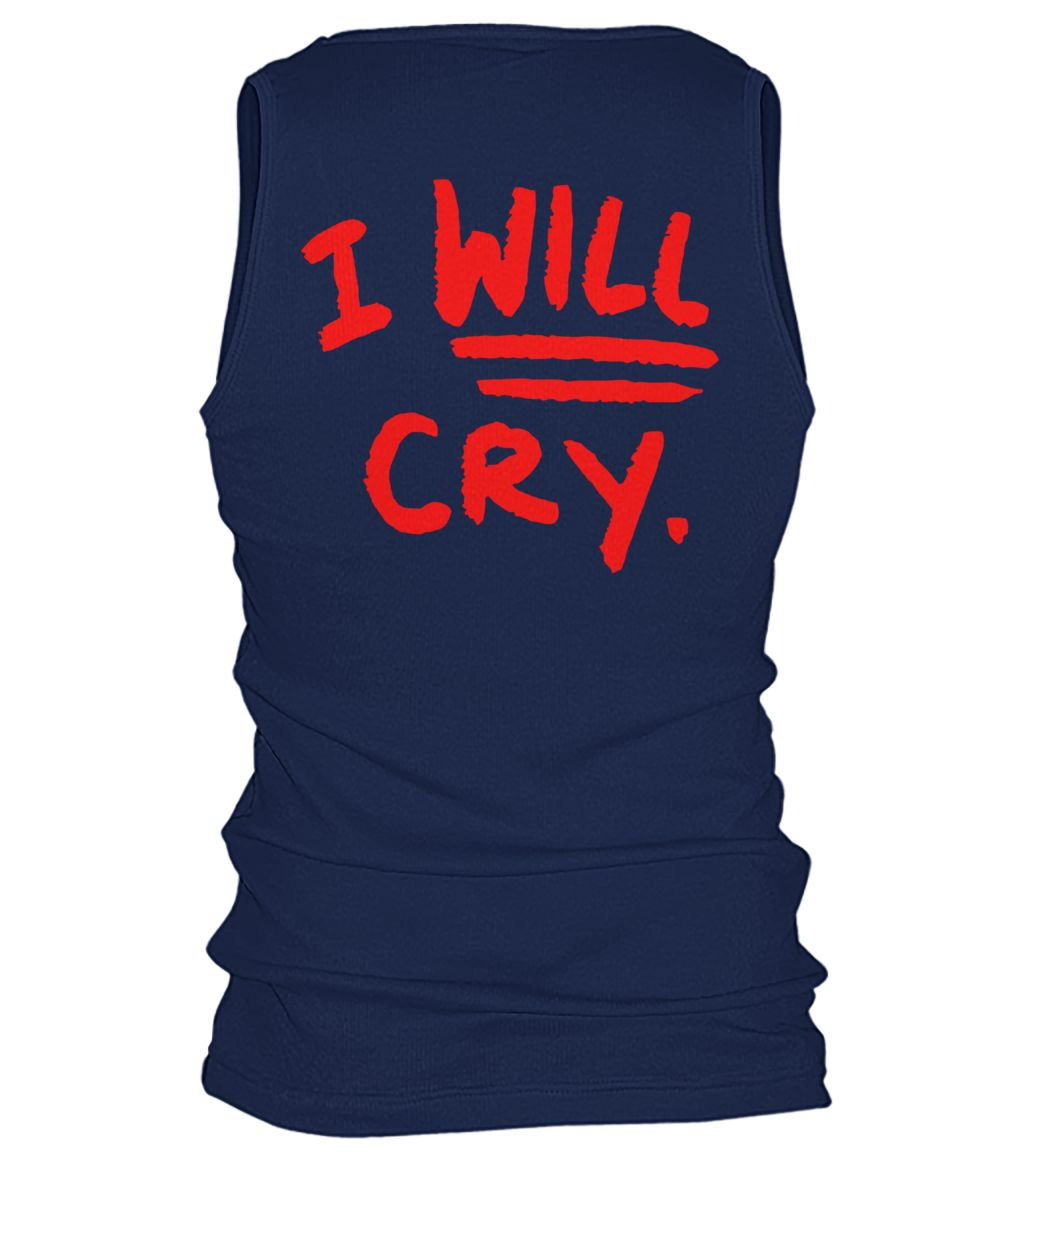 Don't fuck with me I will cry men's tank top